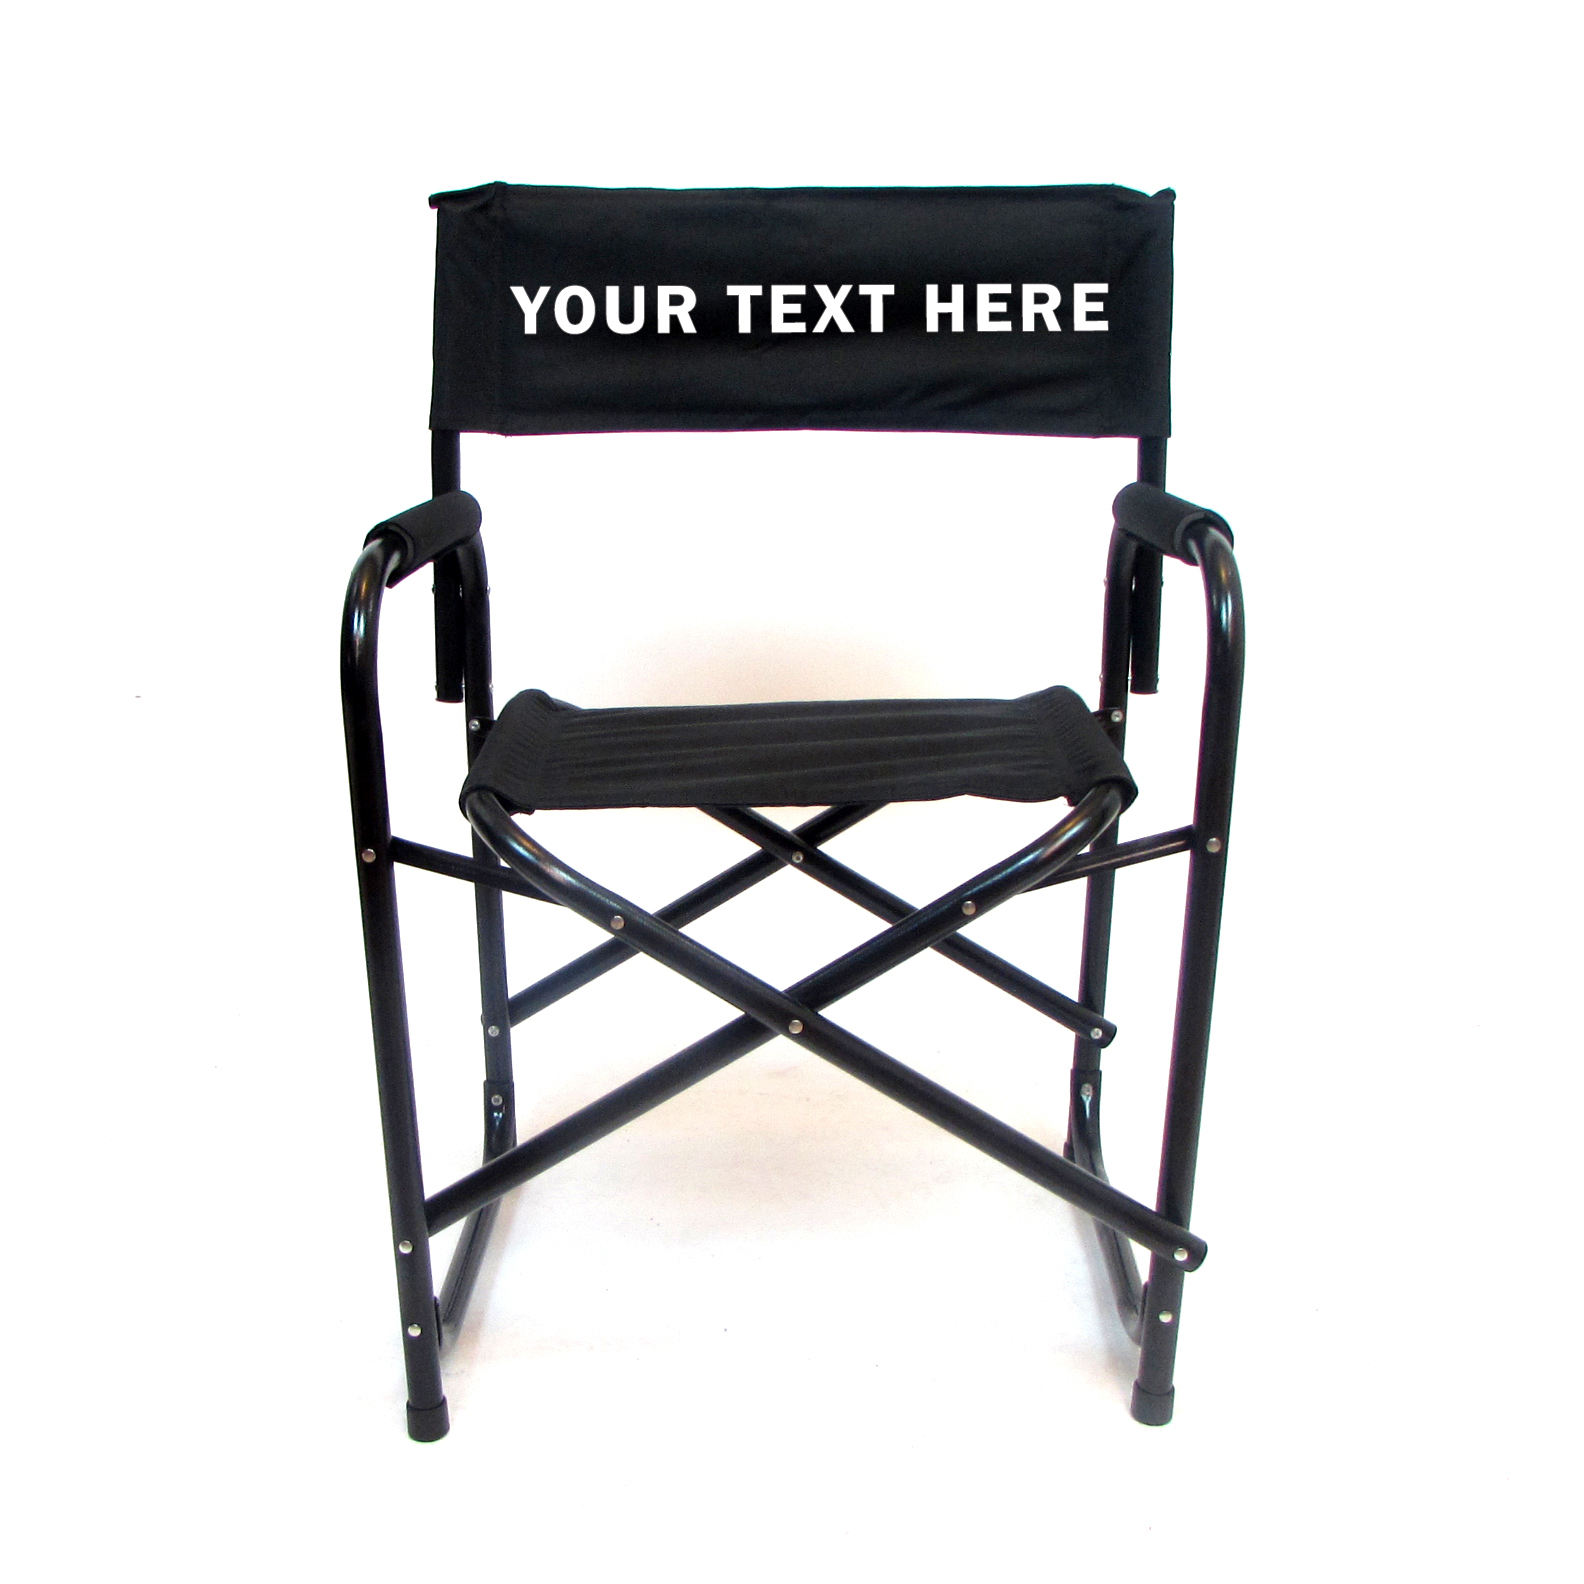 customized directors chair samsonite patio replacement parts embroidered personalized all aluminum 18 inch